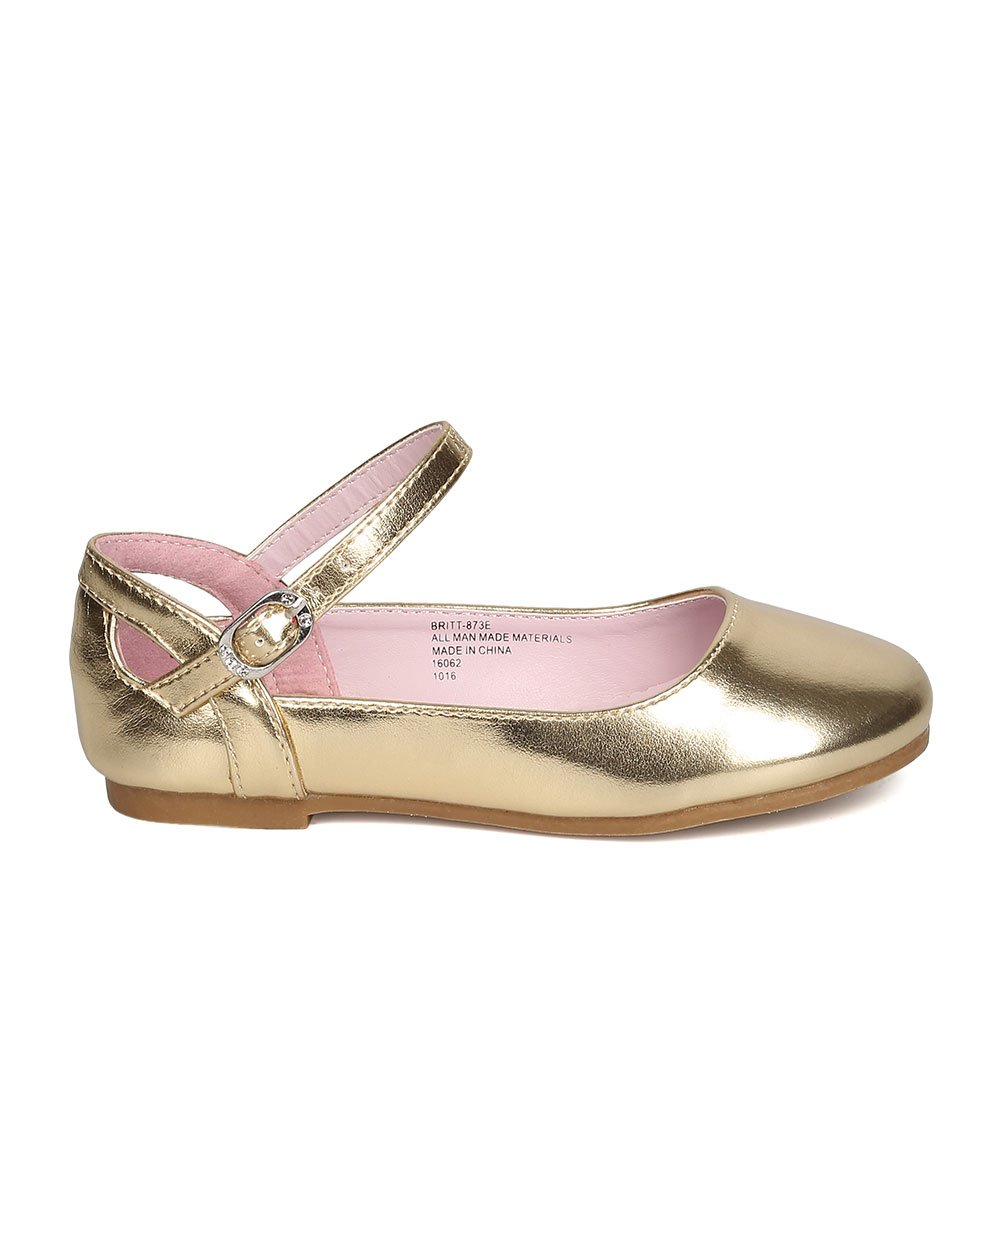 Girls Metallic Leatherette Ankle Strap Cut Out Ballet Flat GB36 - Gold (Size: Toddler 8) by Little Angel (Image #2)